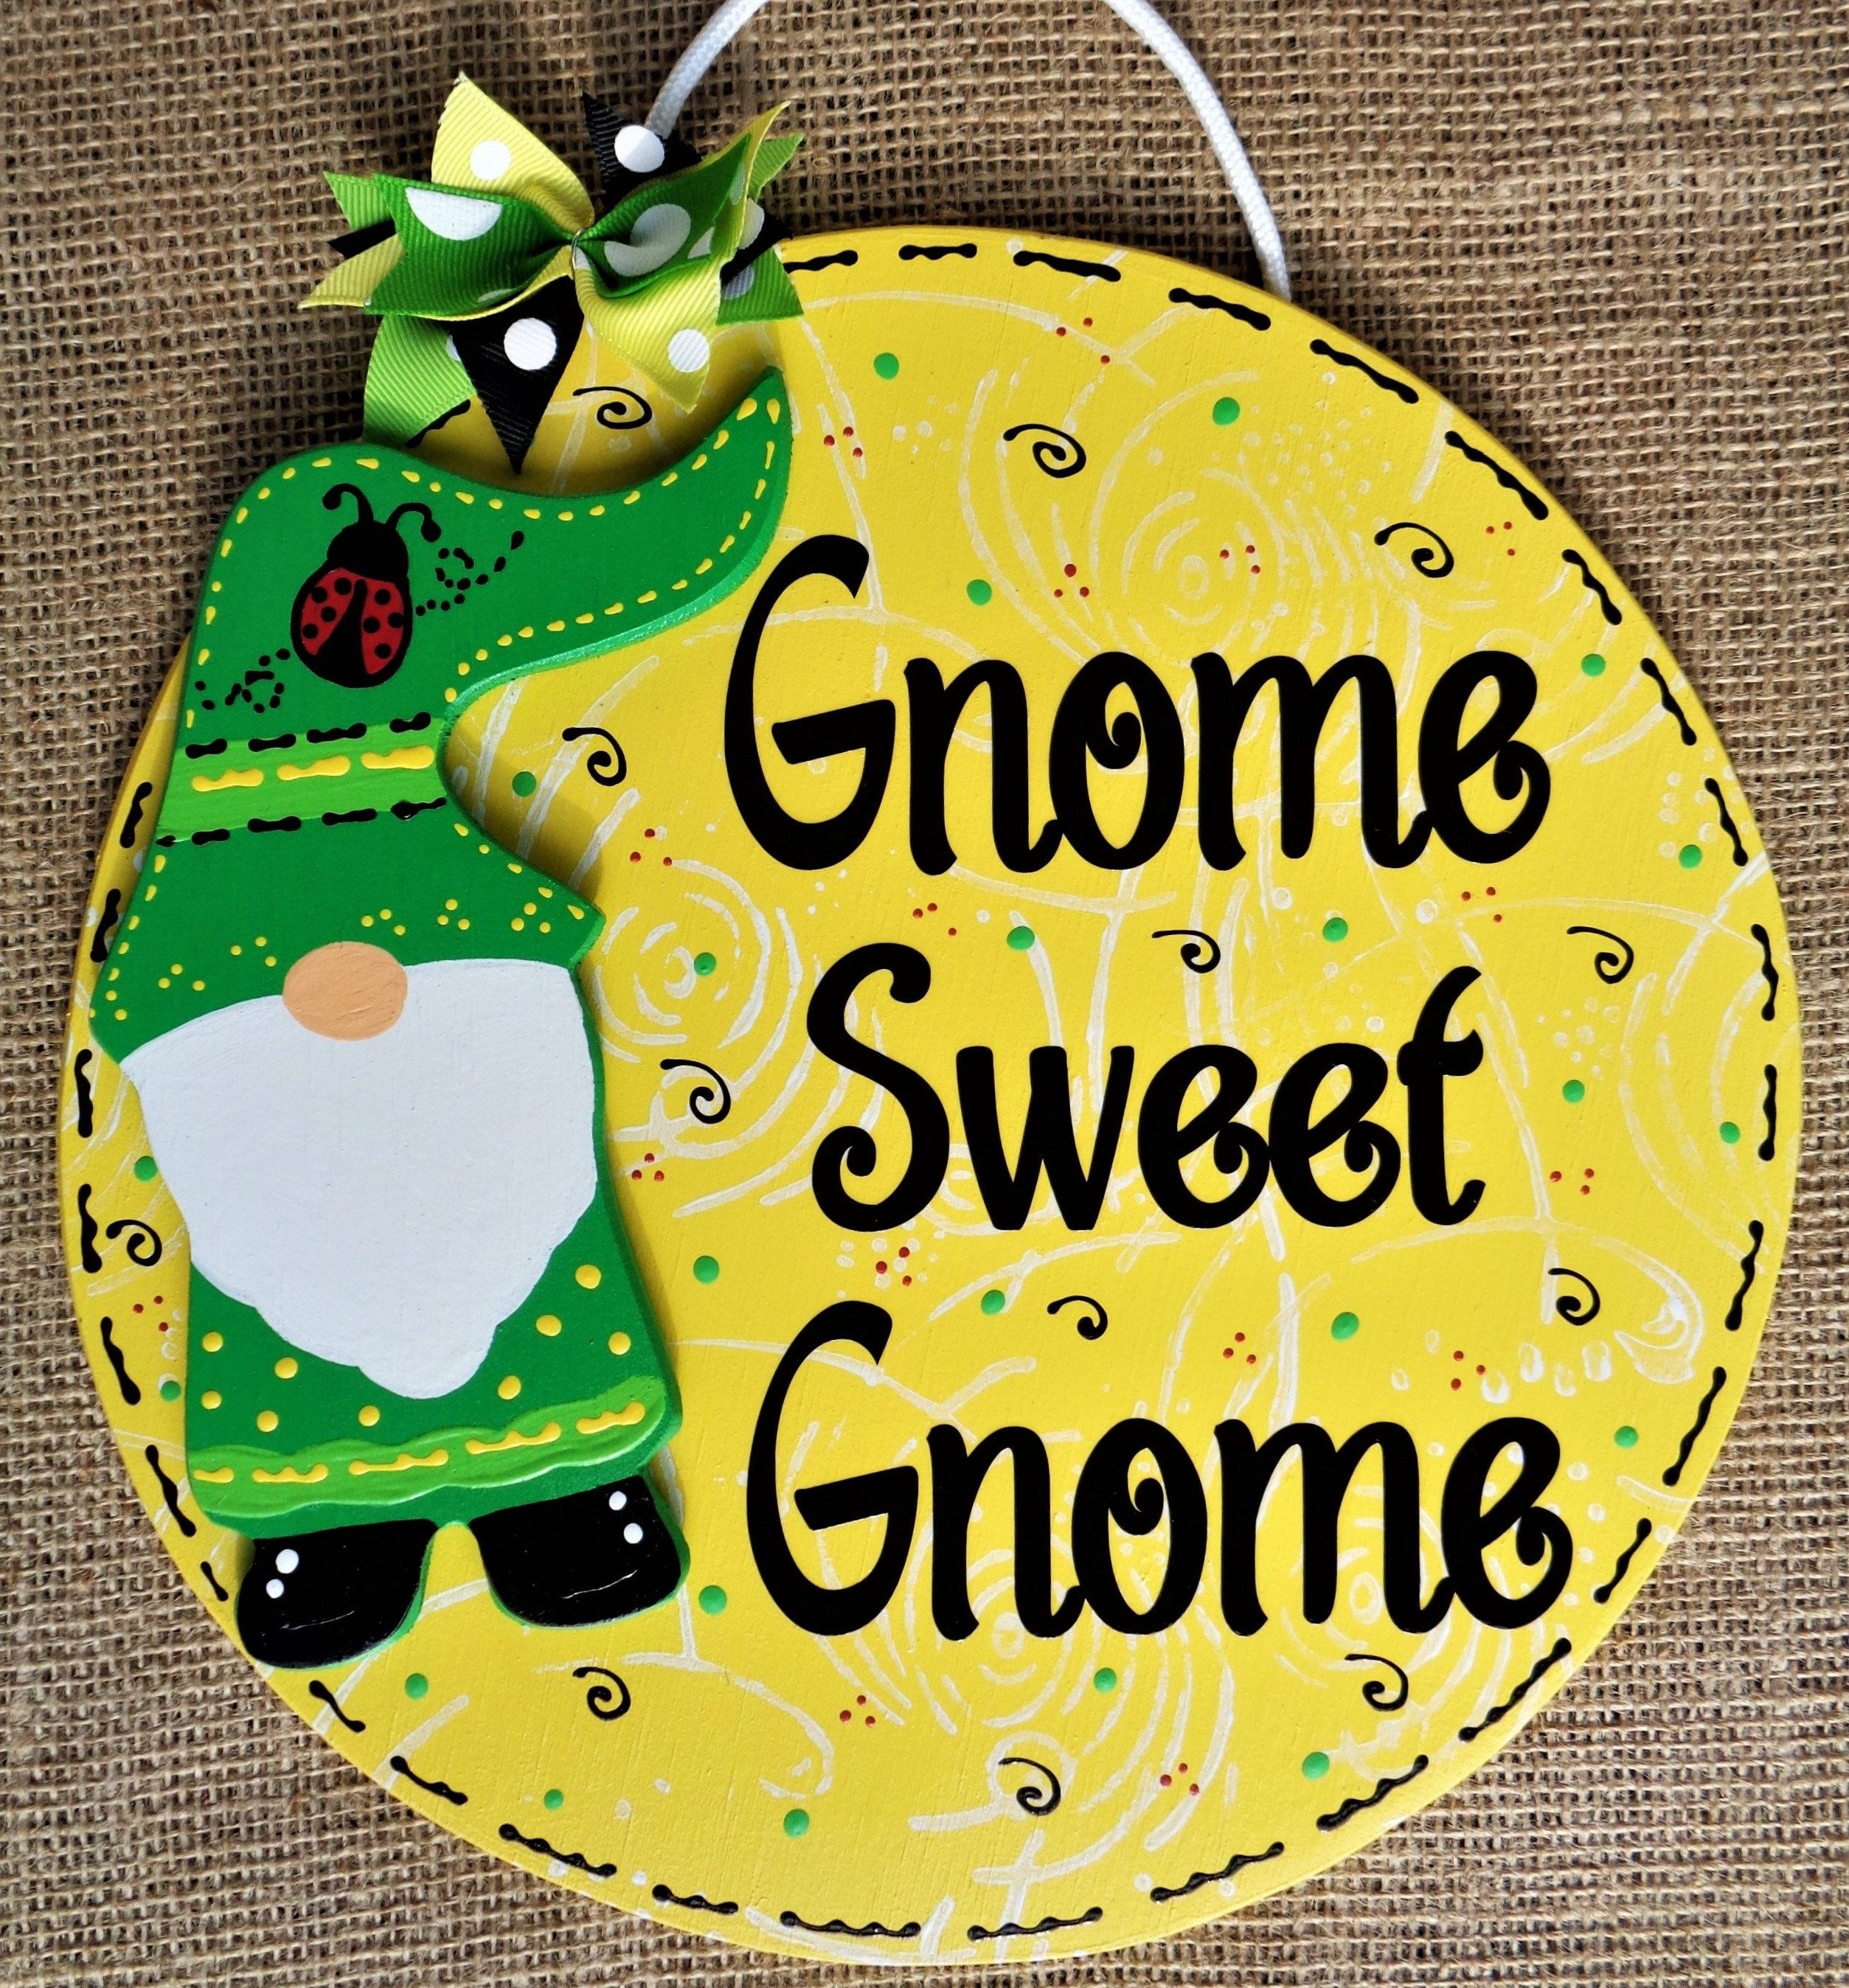 Gnome Sweet Gnome Circle Sign Wall Door Hanger Plaque Family Country Decor Handcrafted Hand Painted Wood Wooden Spring Summer Ladybug In 2020 Hand Painted Decor